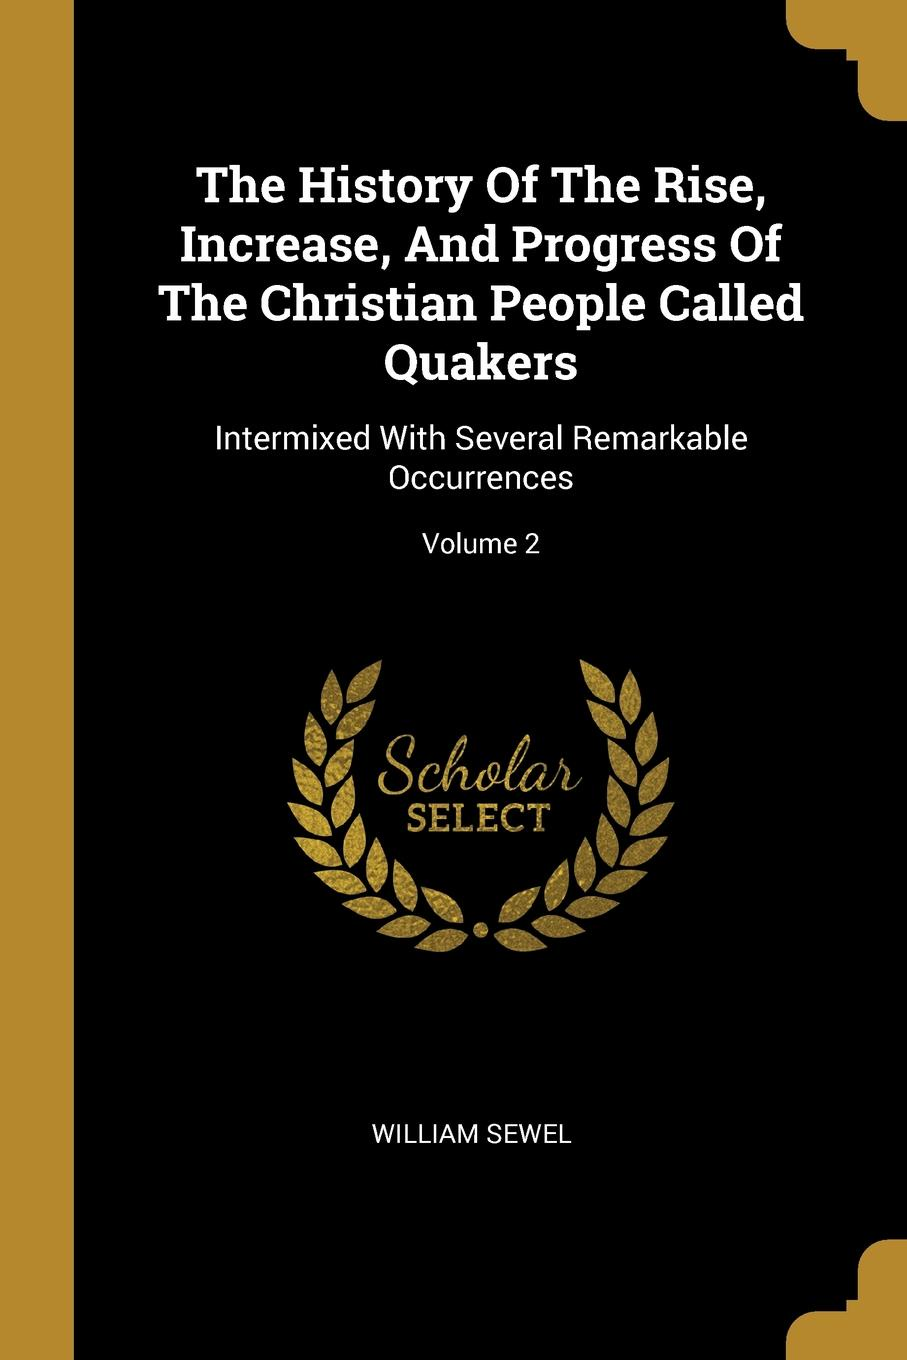 William Sewel. The History Of The Rise, Increase, And Progress Of The Christian People Called Quakers. Intermixed With Several Remarkable Occurrences; Volume 2